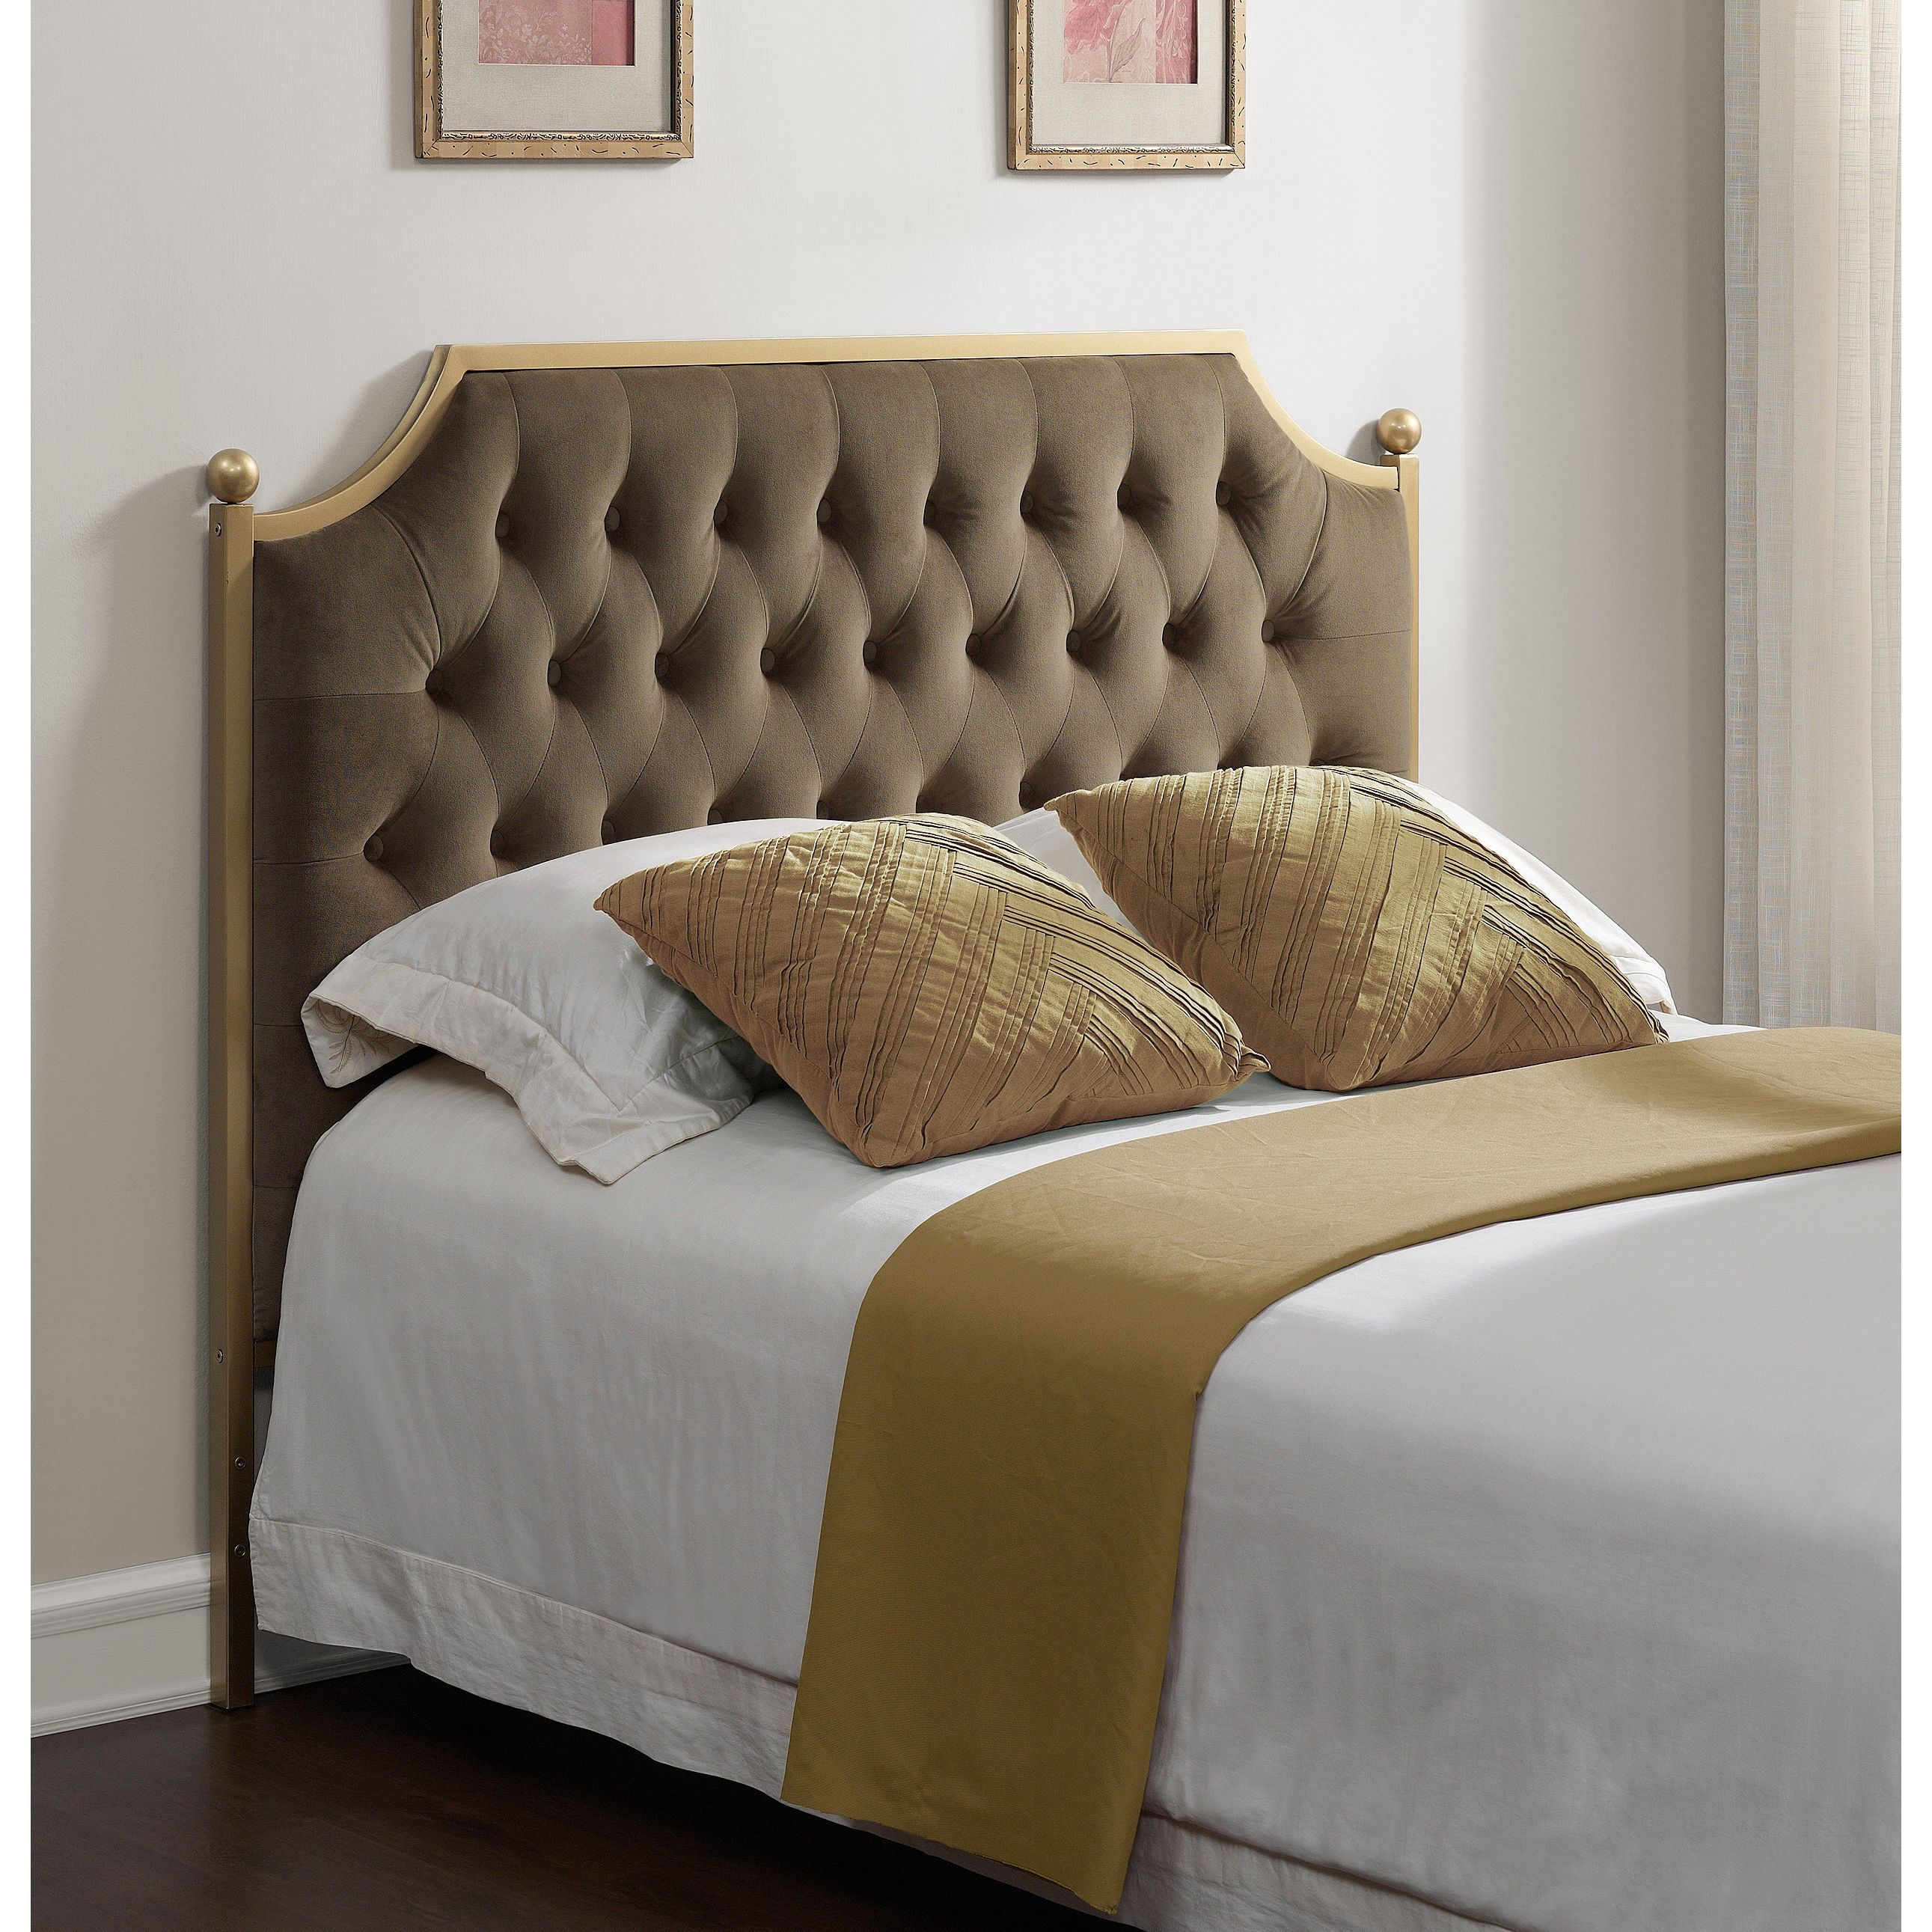 overstock com online shopping bedding furniture electronics jewelry clothing more queen size headboard brown of super king mattress uk